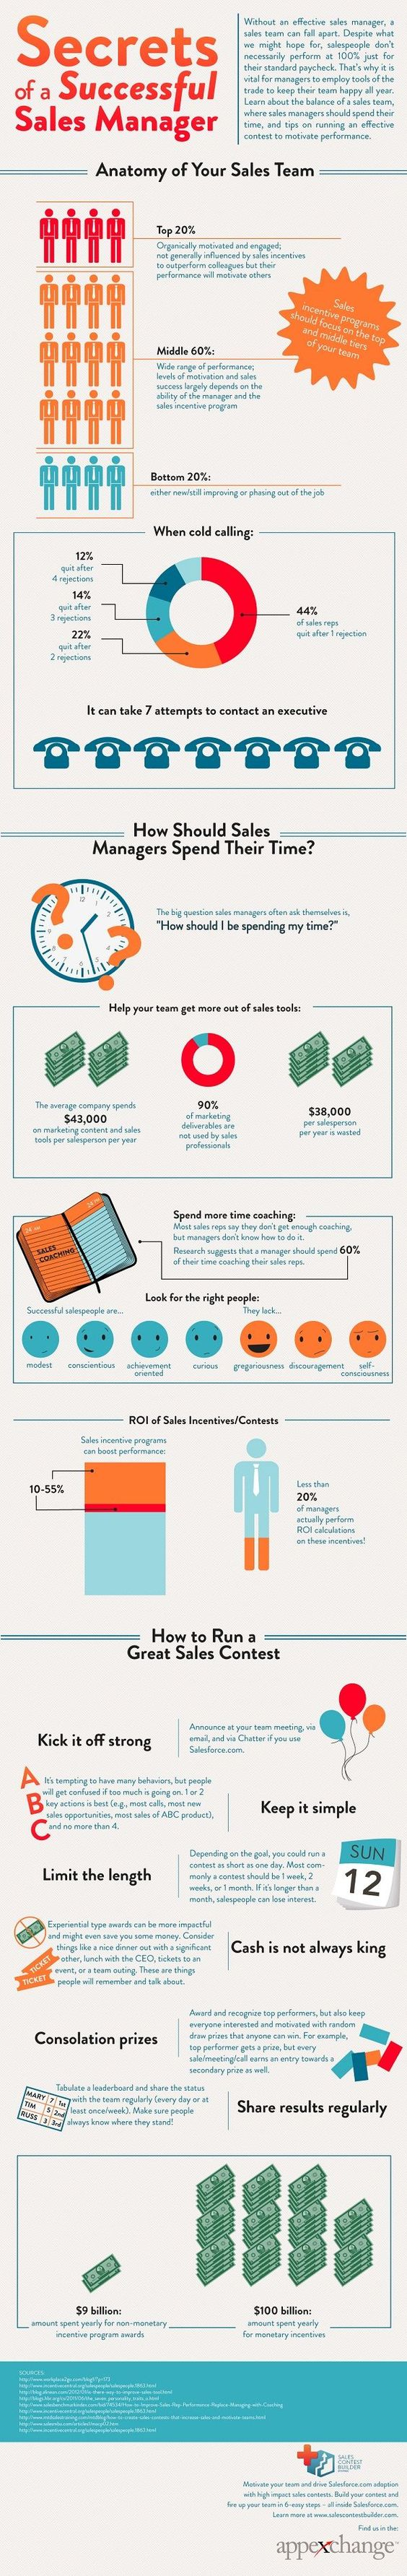 Secrets of a Successful Sales Manager - INFOGRAPHIC - From #Pharma #Sales #Jobs